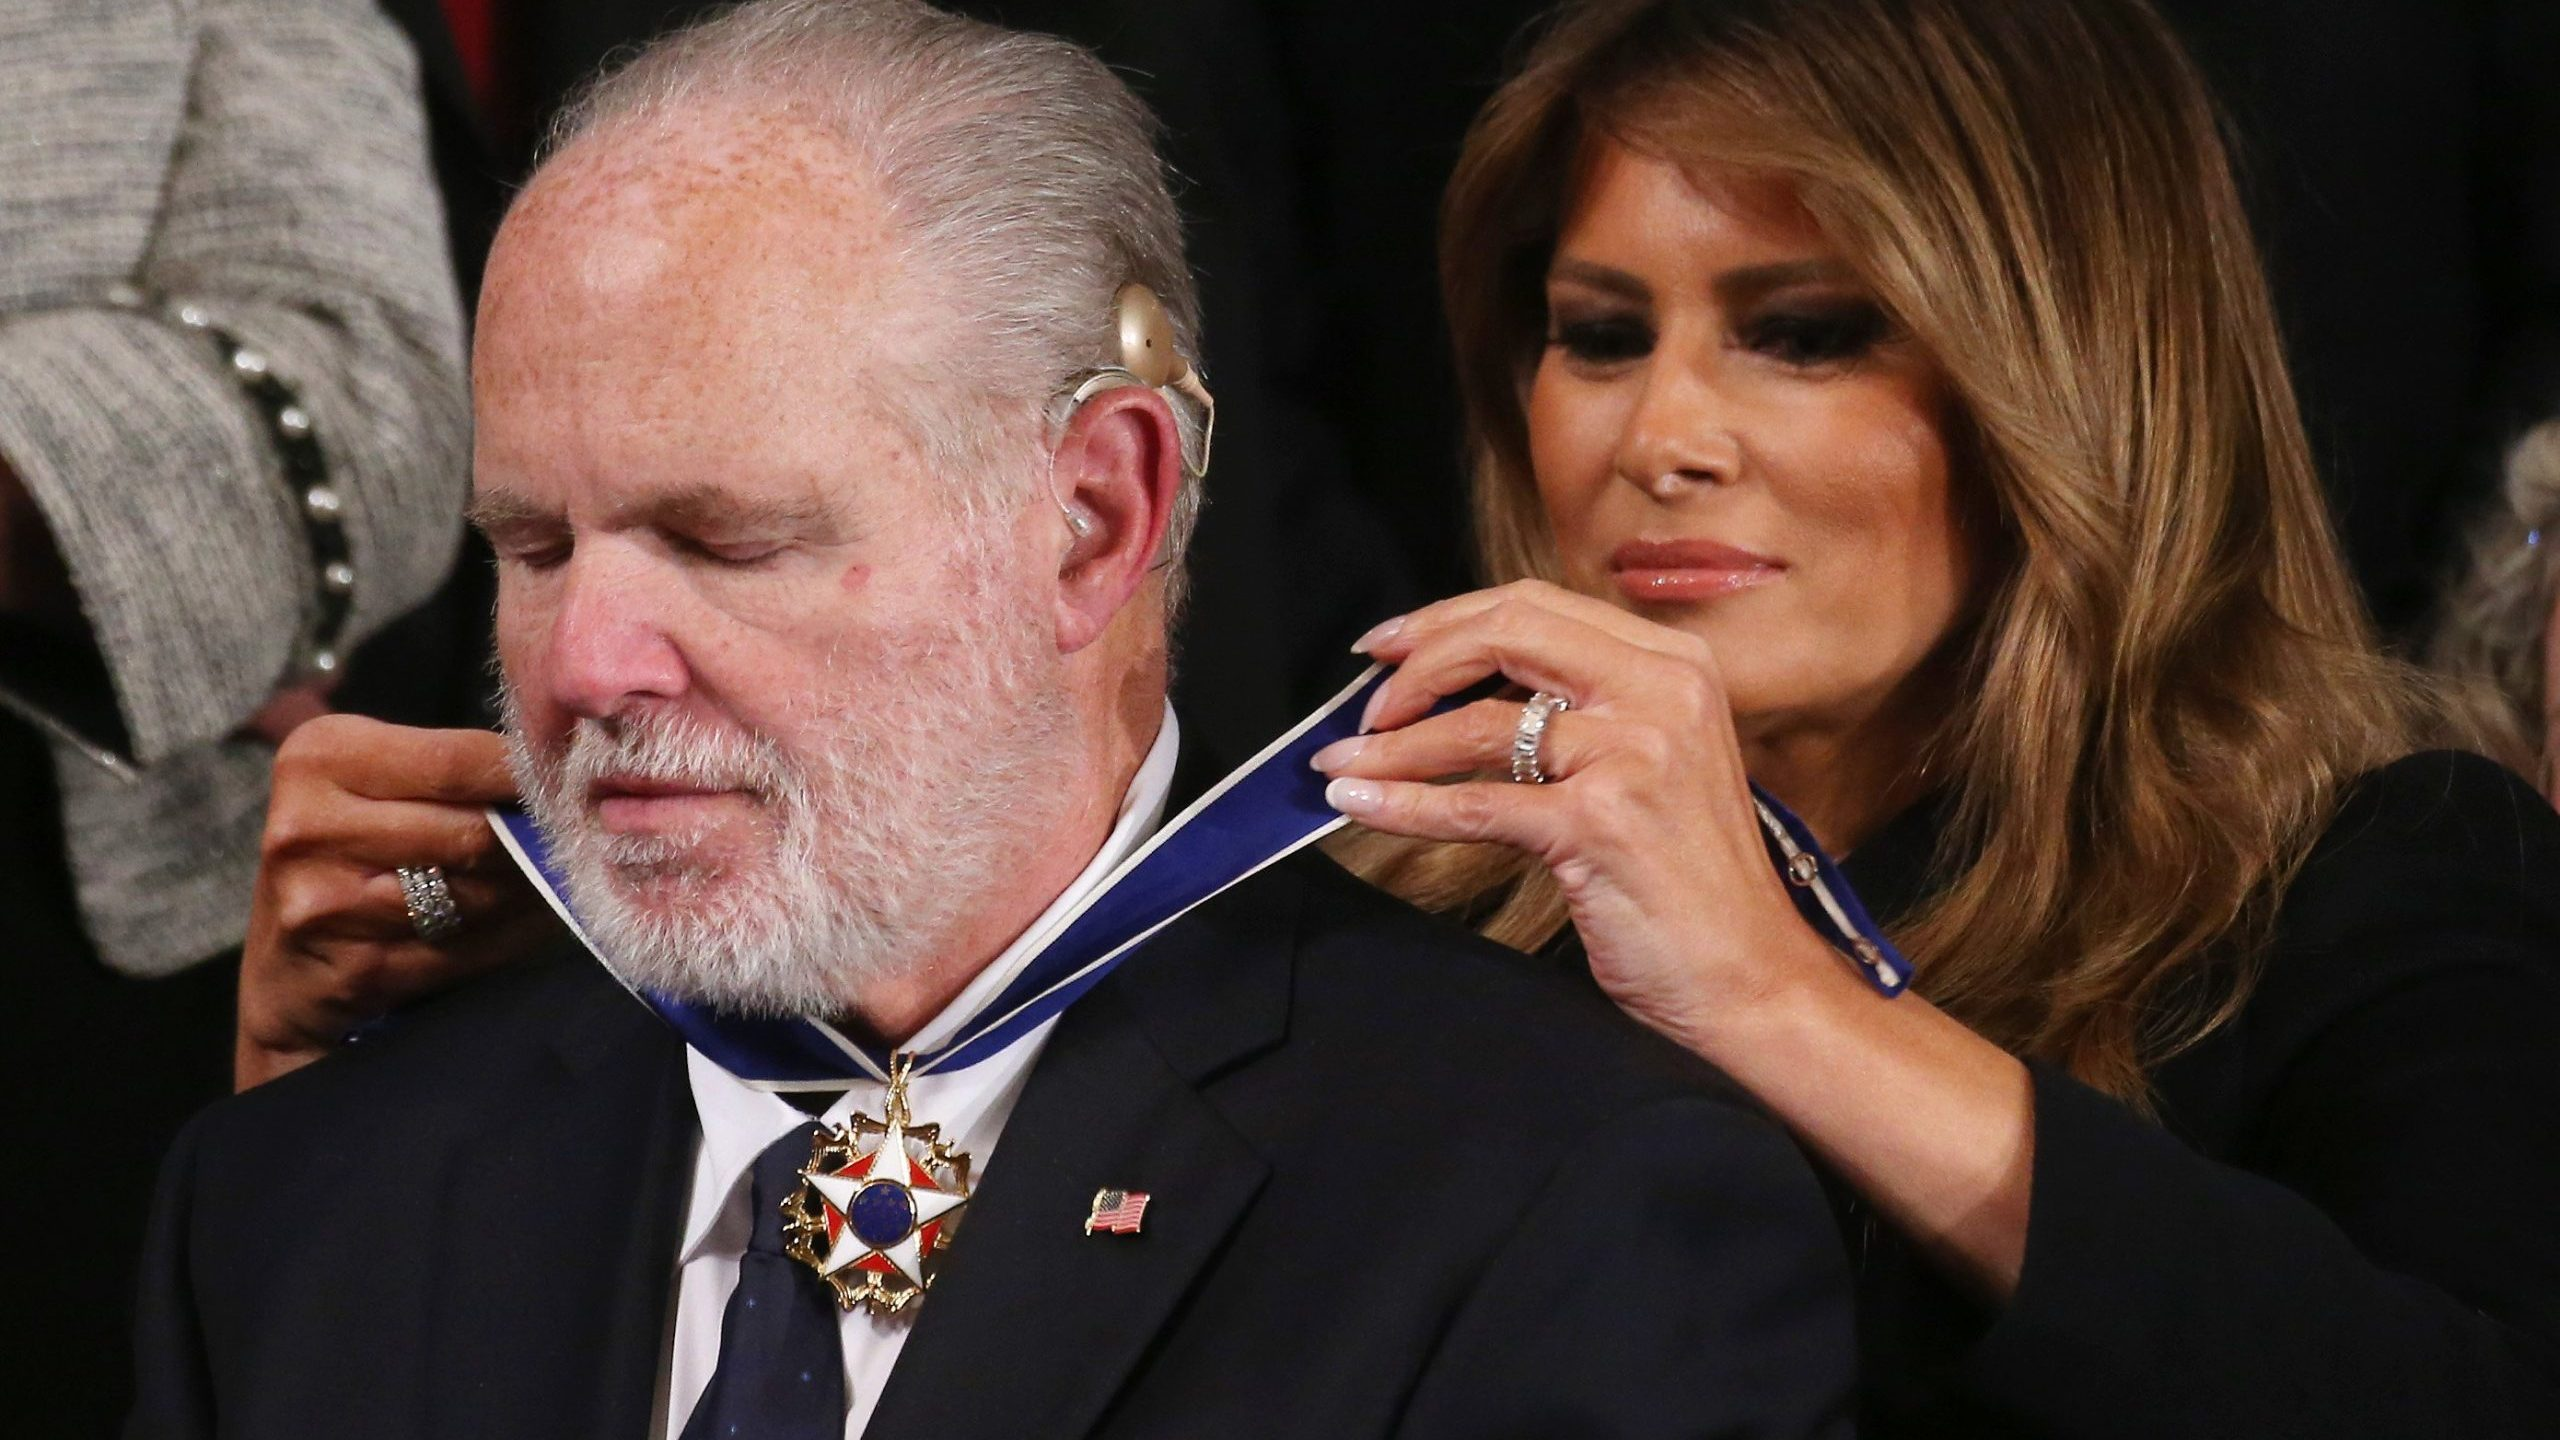 Radio personality Rush Limbaugh reacts as first lady Melania Trump gives him the Presidential Medal of Freedom during the State of the Union address on Feb. 4, 2020. (Credit: Mario Tama / Getty Images)